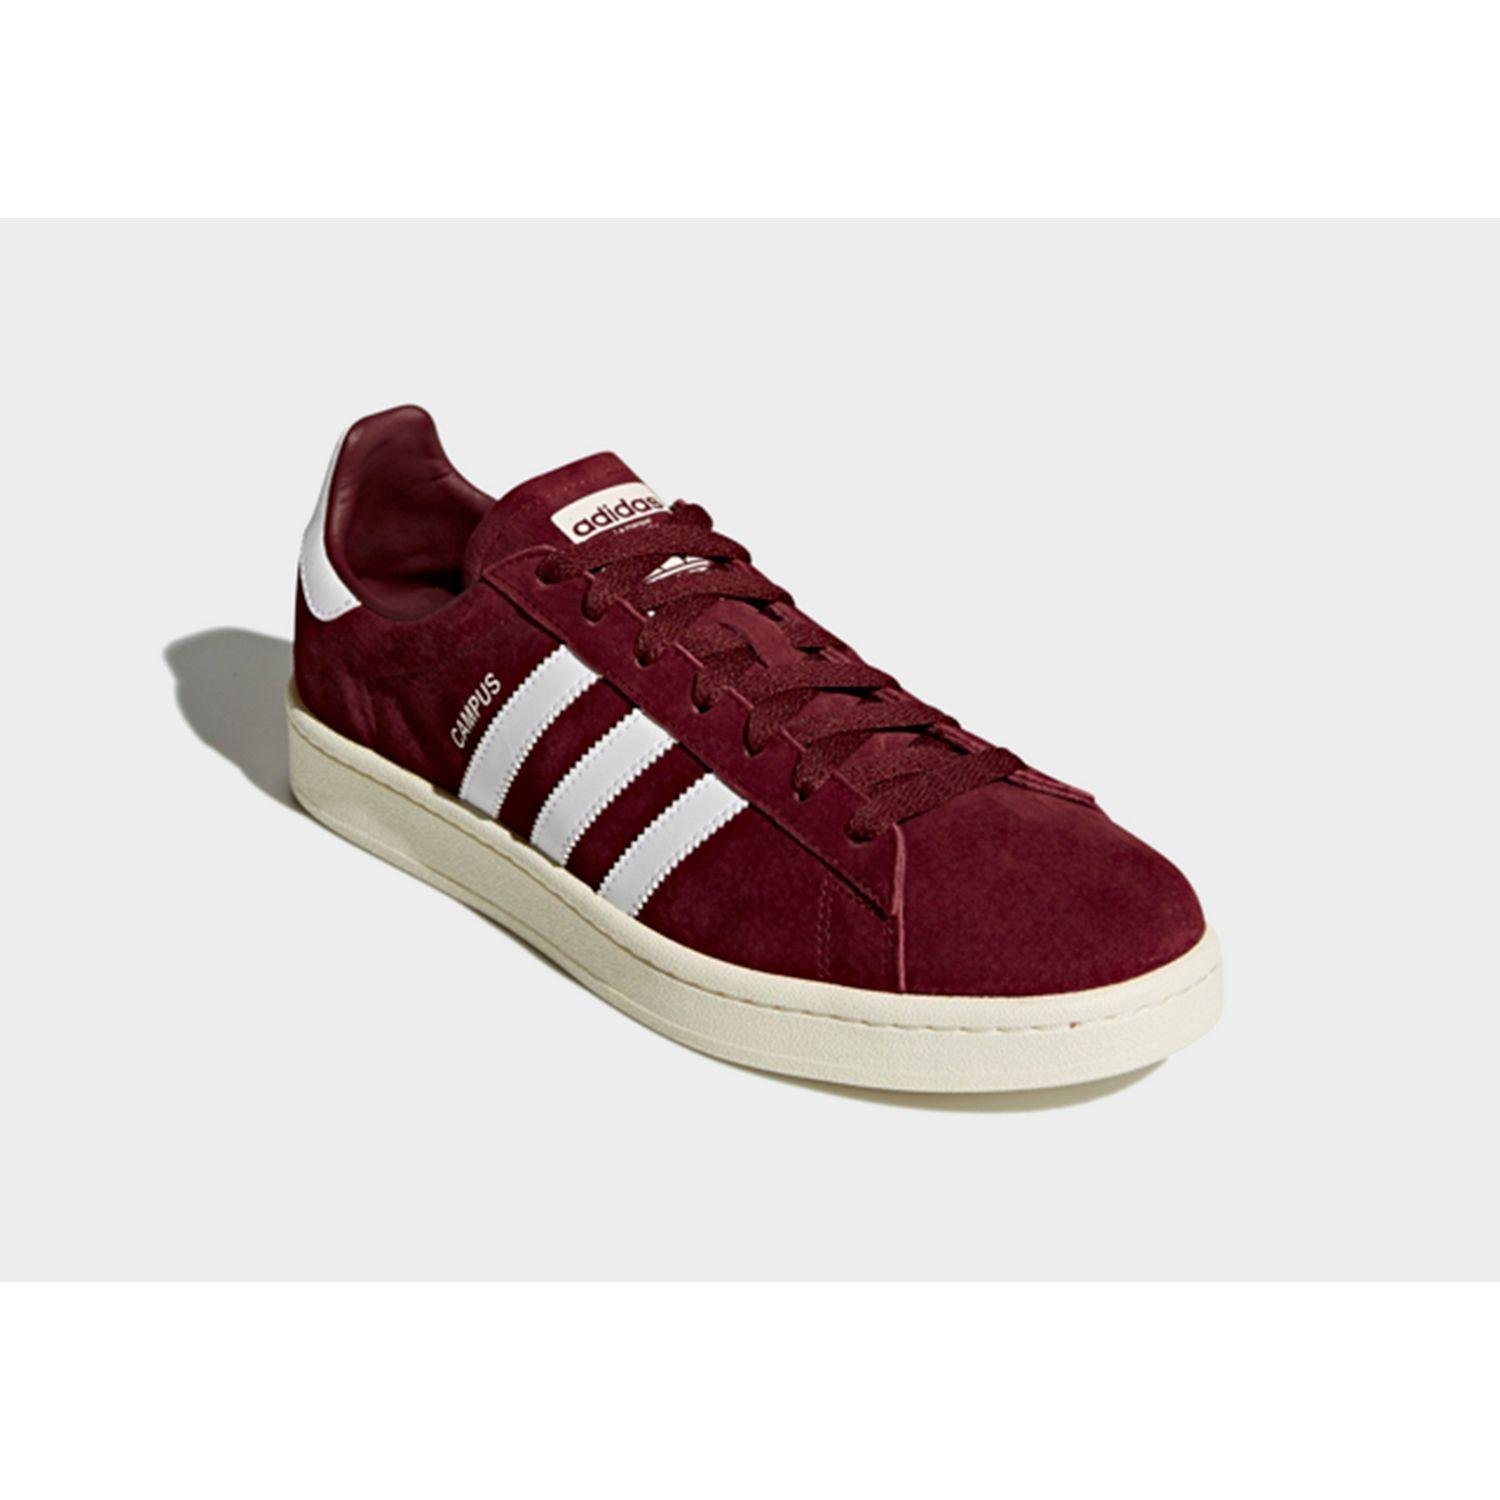 adidas Campus Shoes in Red - Lyst